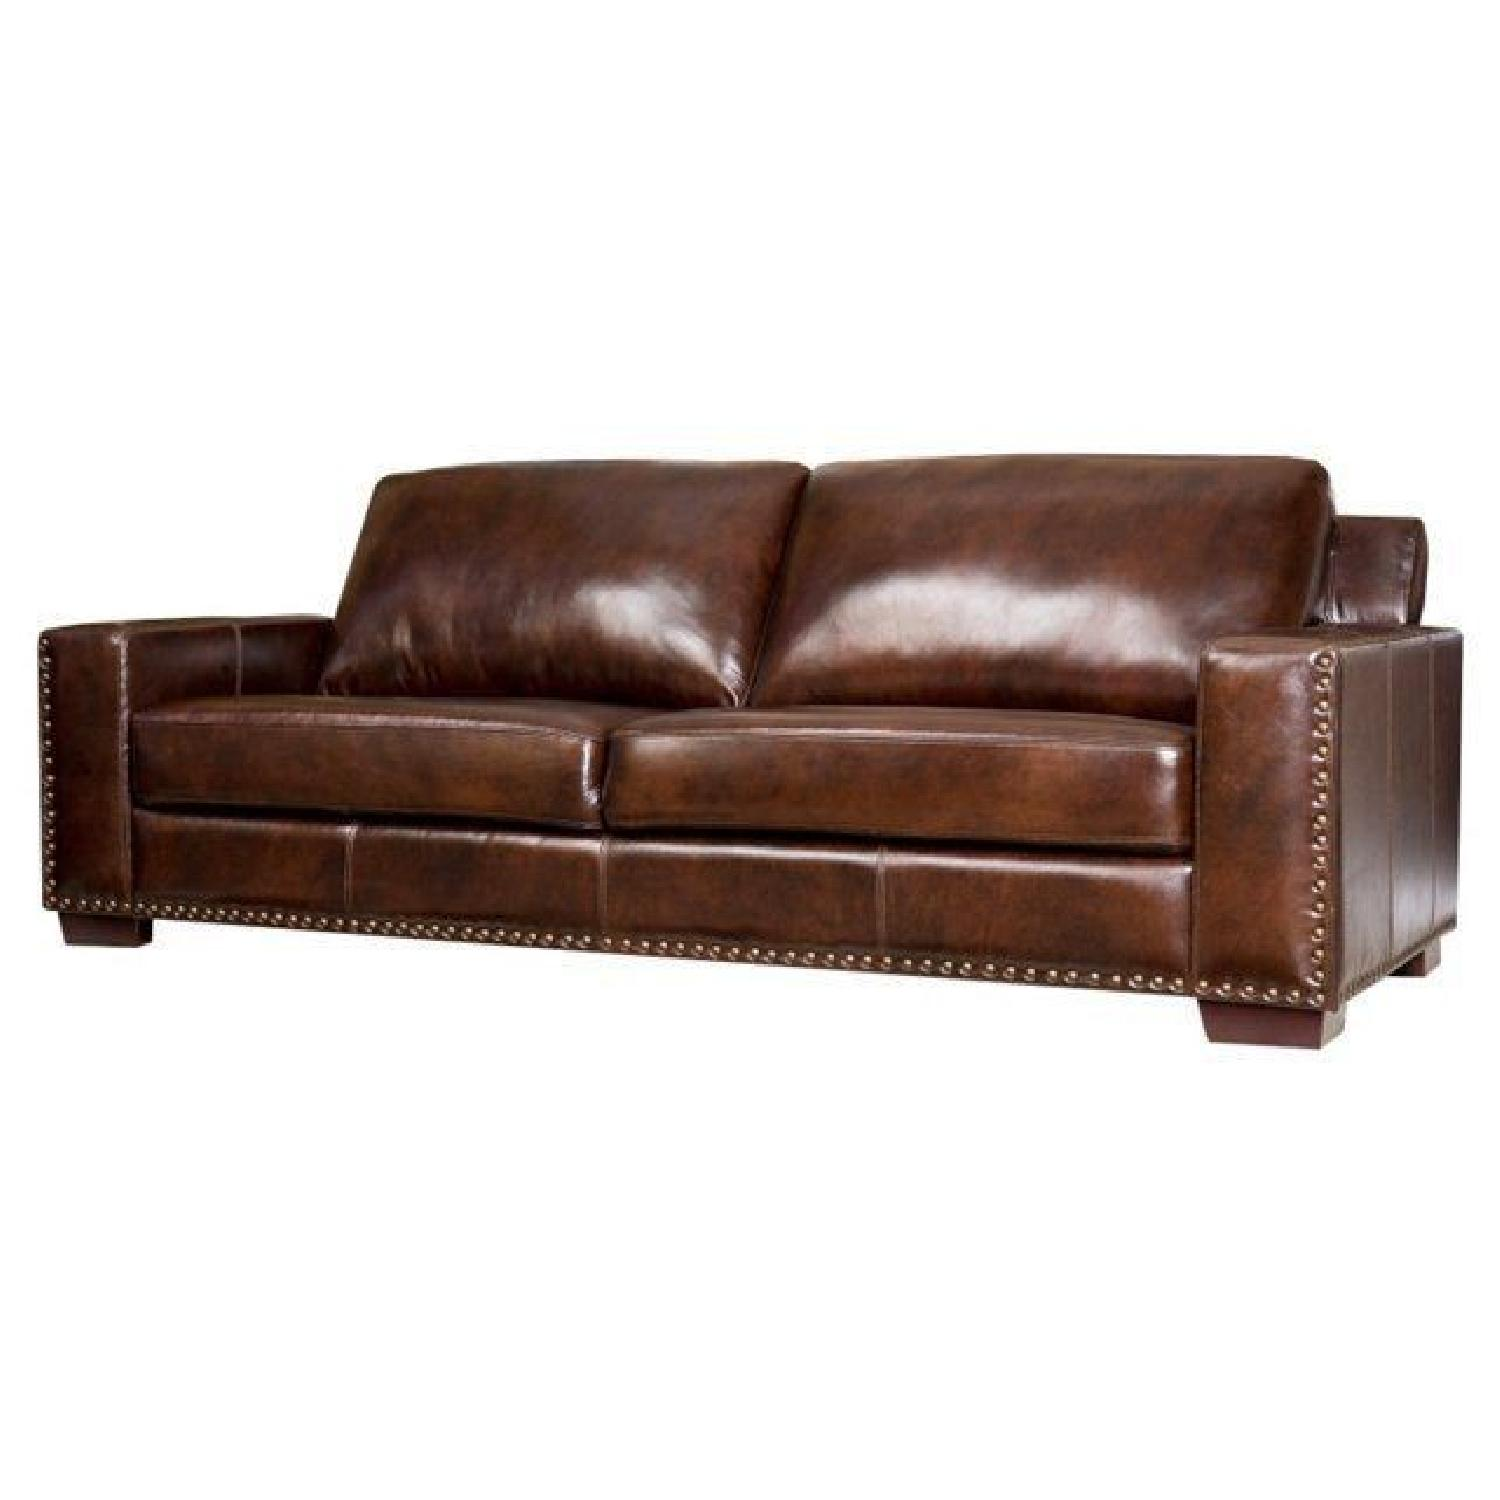 mitchell gold sofa. Abbyson Living Bravo Brown Leather Sofa Mitchell Gold